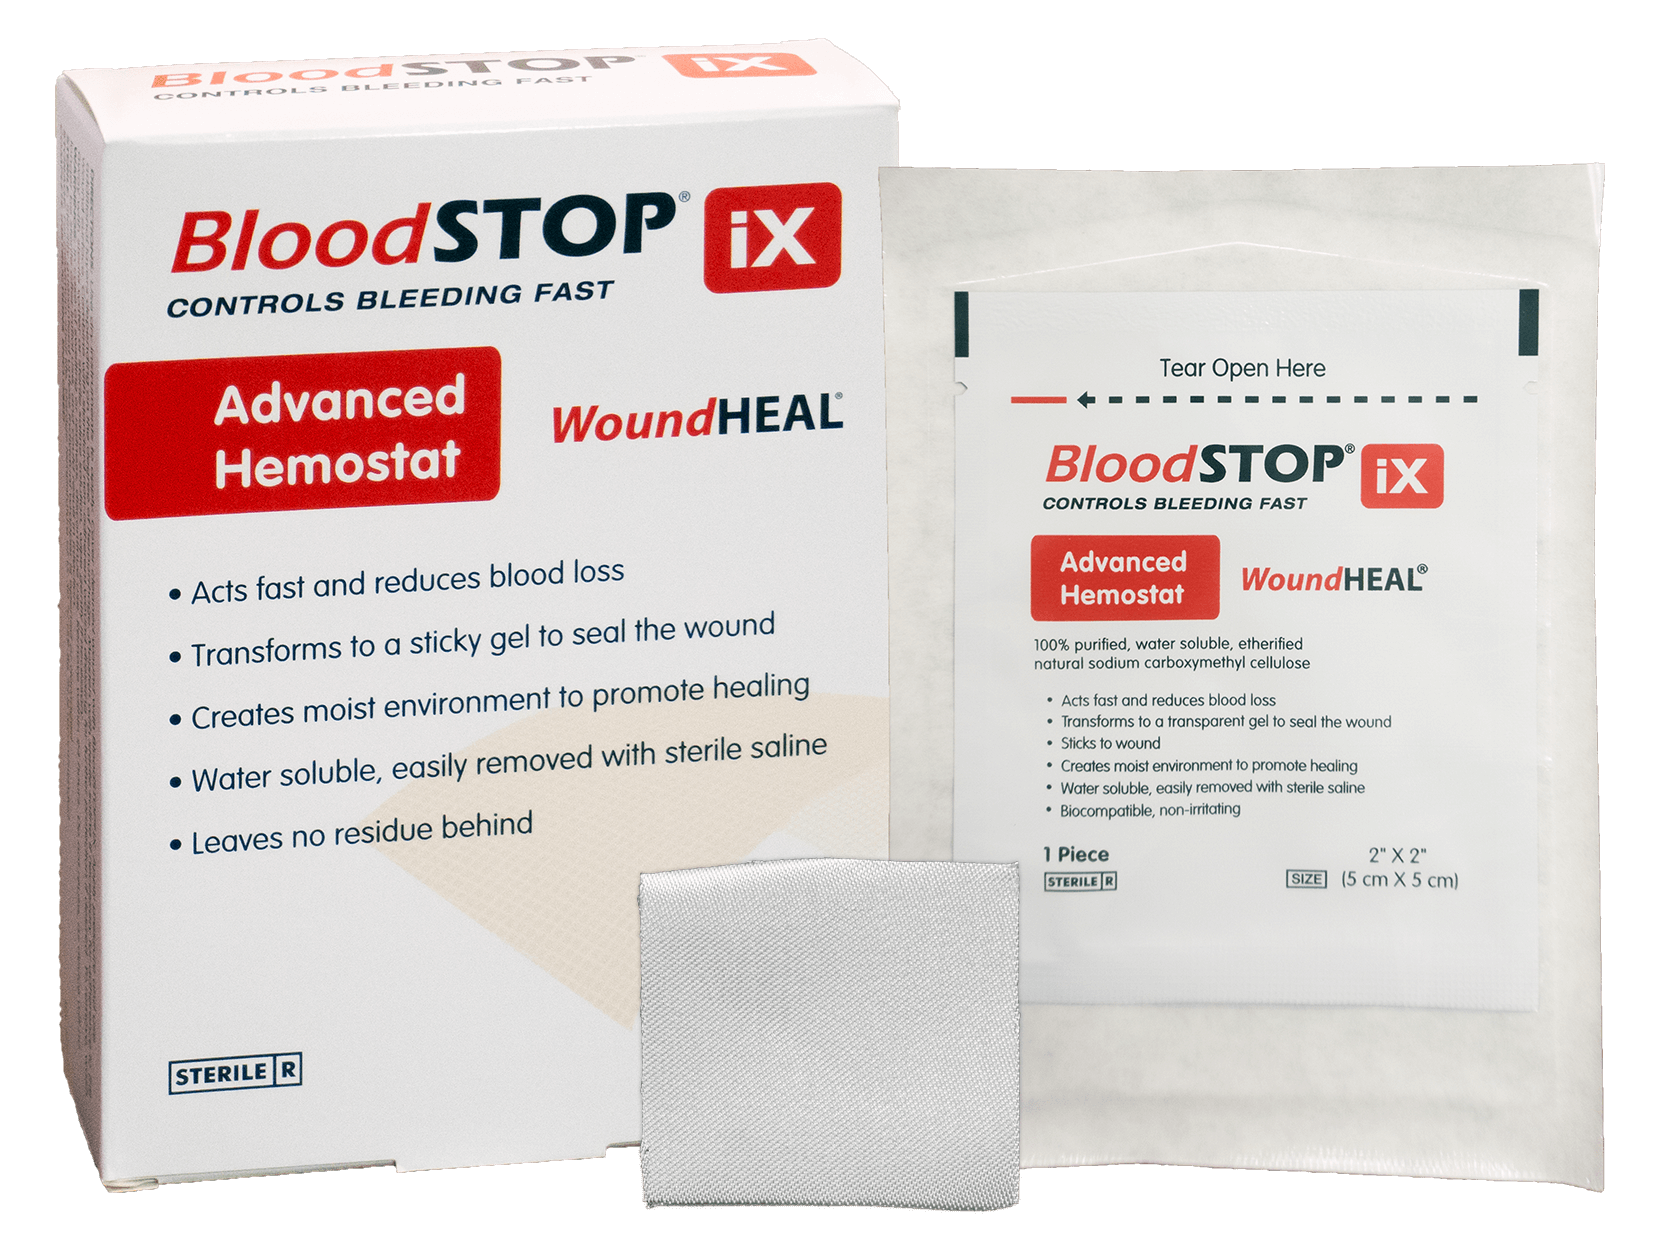 "BloodSTOP iX Advanced Hemostat and WoundHEAL Matrix, 2""x2"" (5x5cm), 12 pcs/Box - For Medical Professionals - LifeSciencePlus"